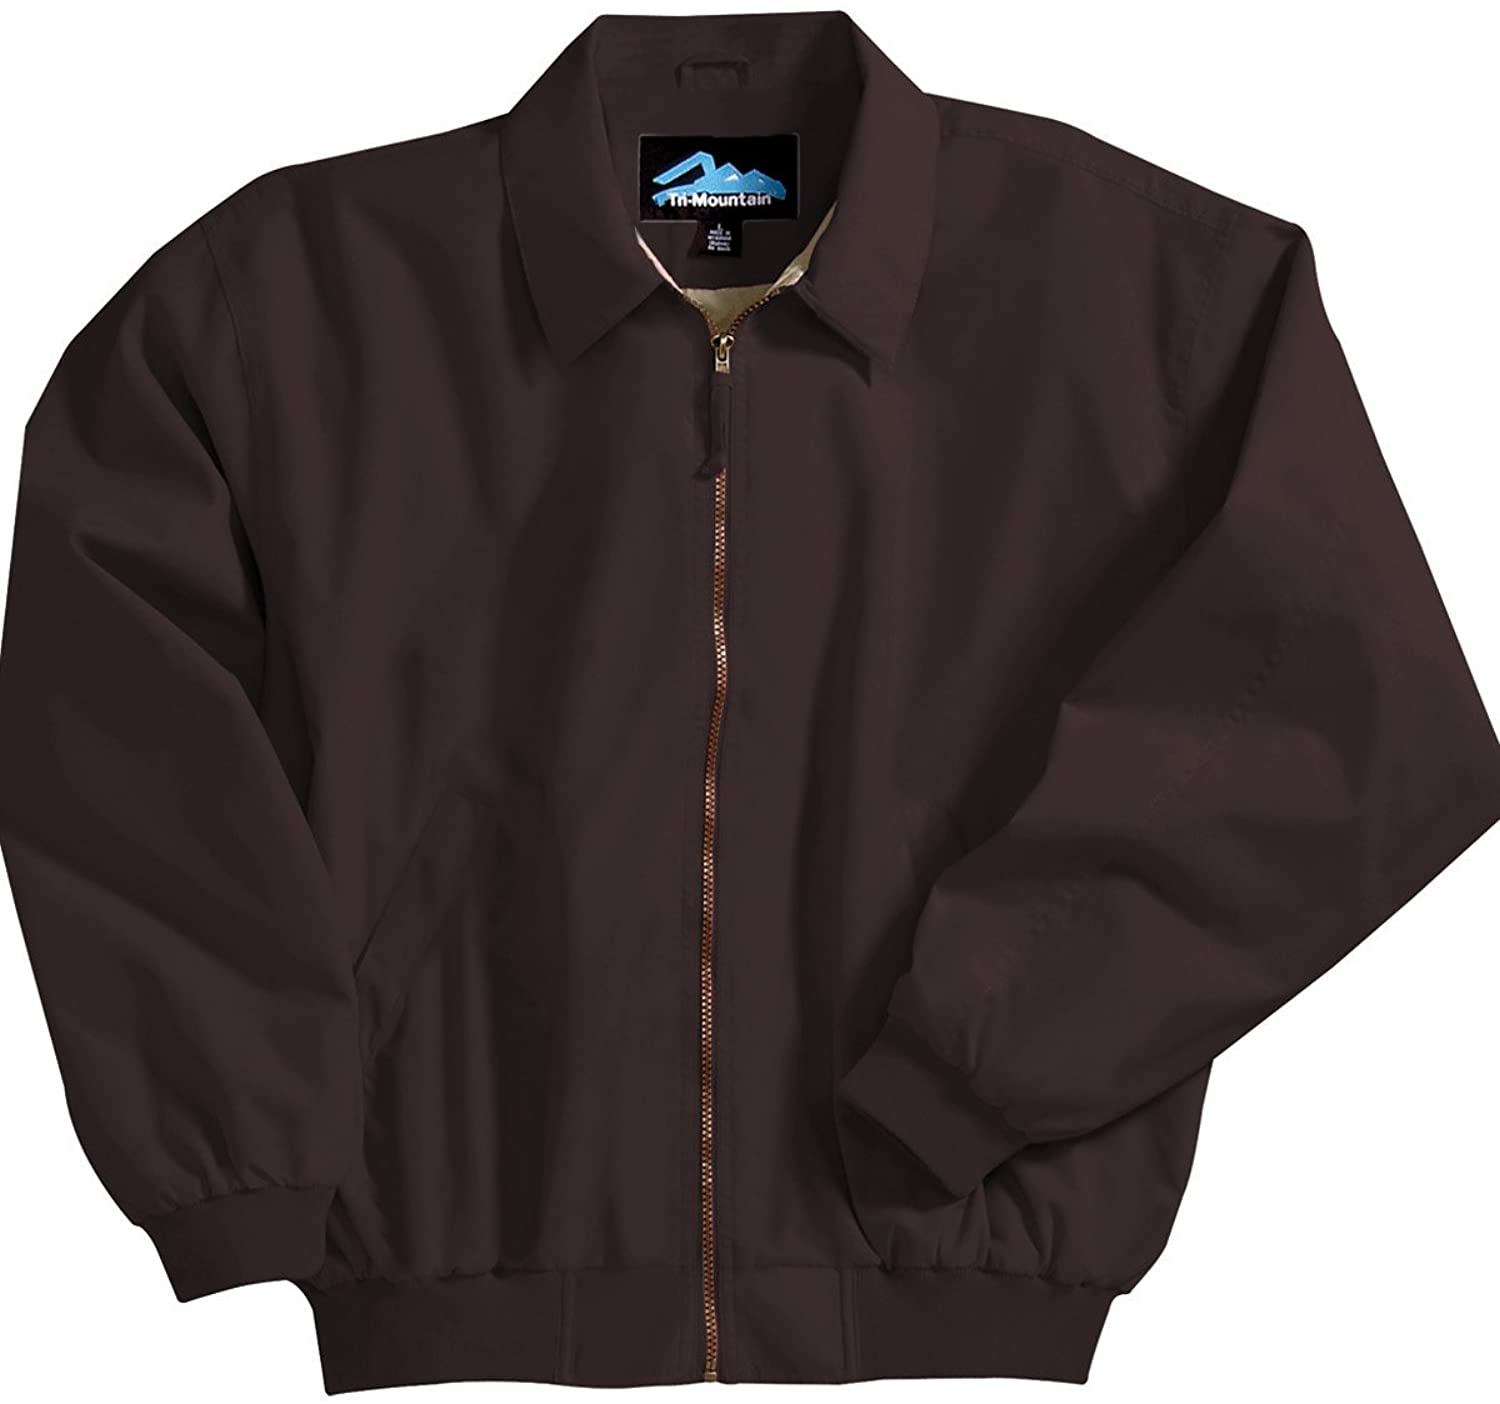 Achiever Microfiber Jacket with Poplin Lining, Color: Midnight Charcoal, Size: X-Large